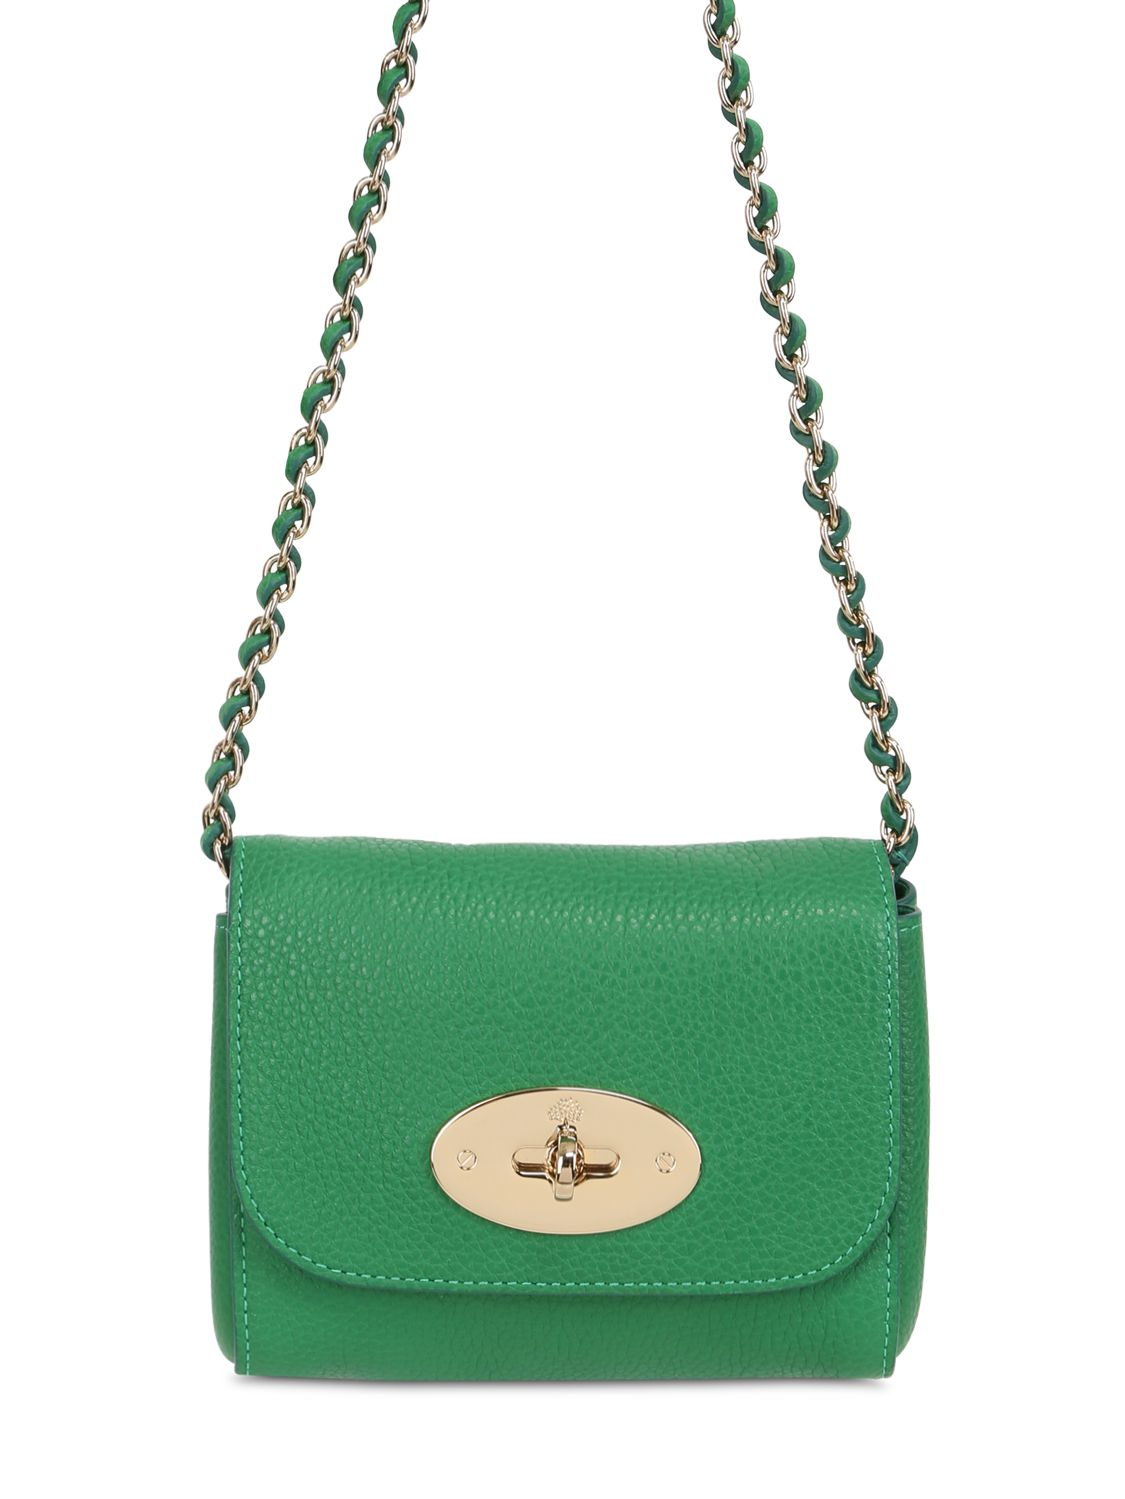 d4f53c39bd Lyst - Mulberry Mini Lily Grained Leather Shoulder Bag in Green